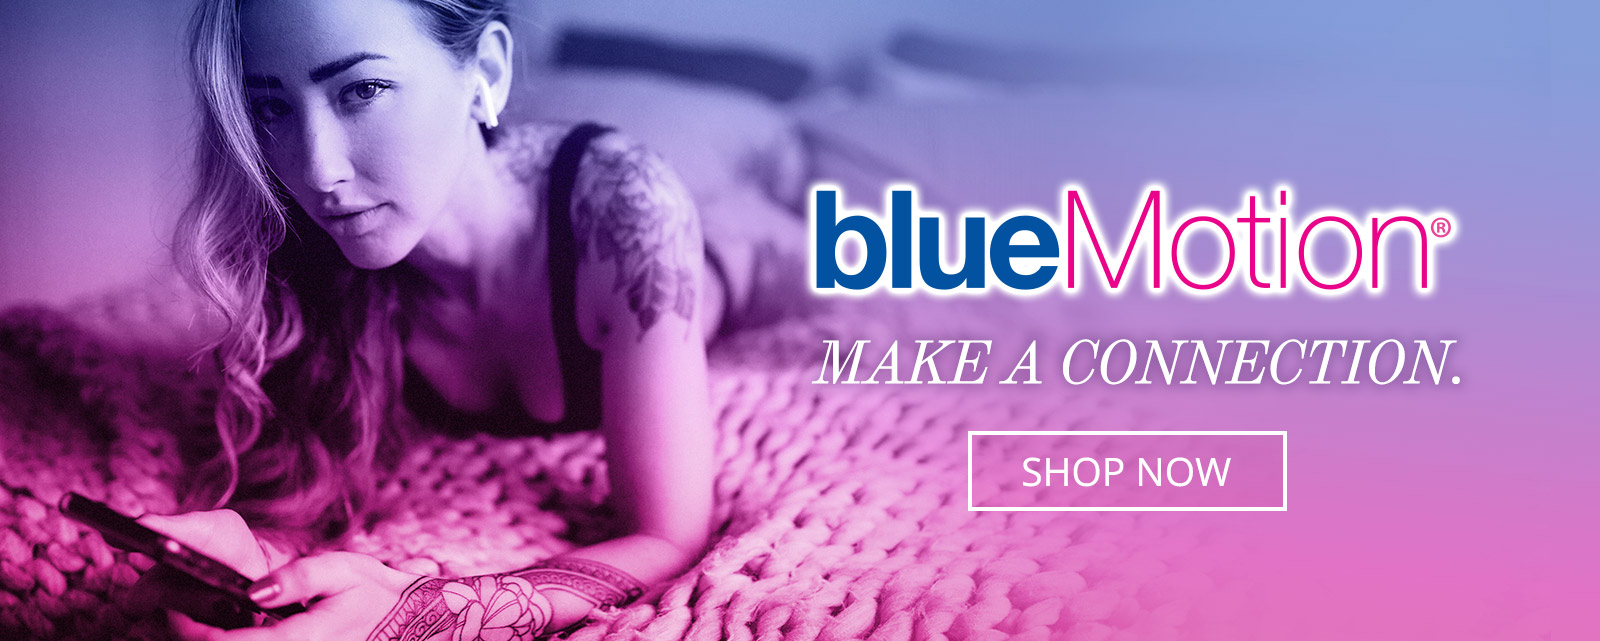 blueMotion Bluetooth® app-connected vibrator